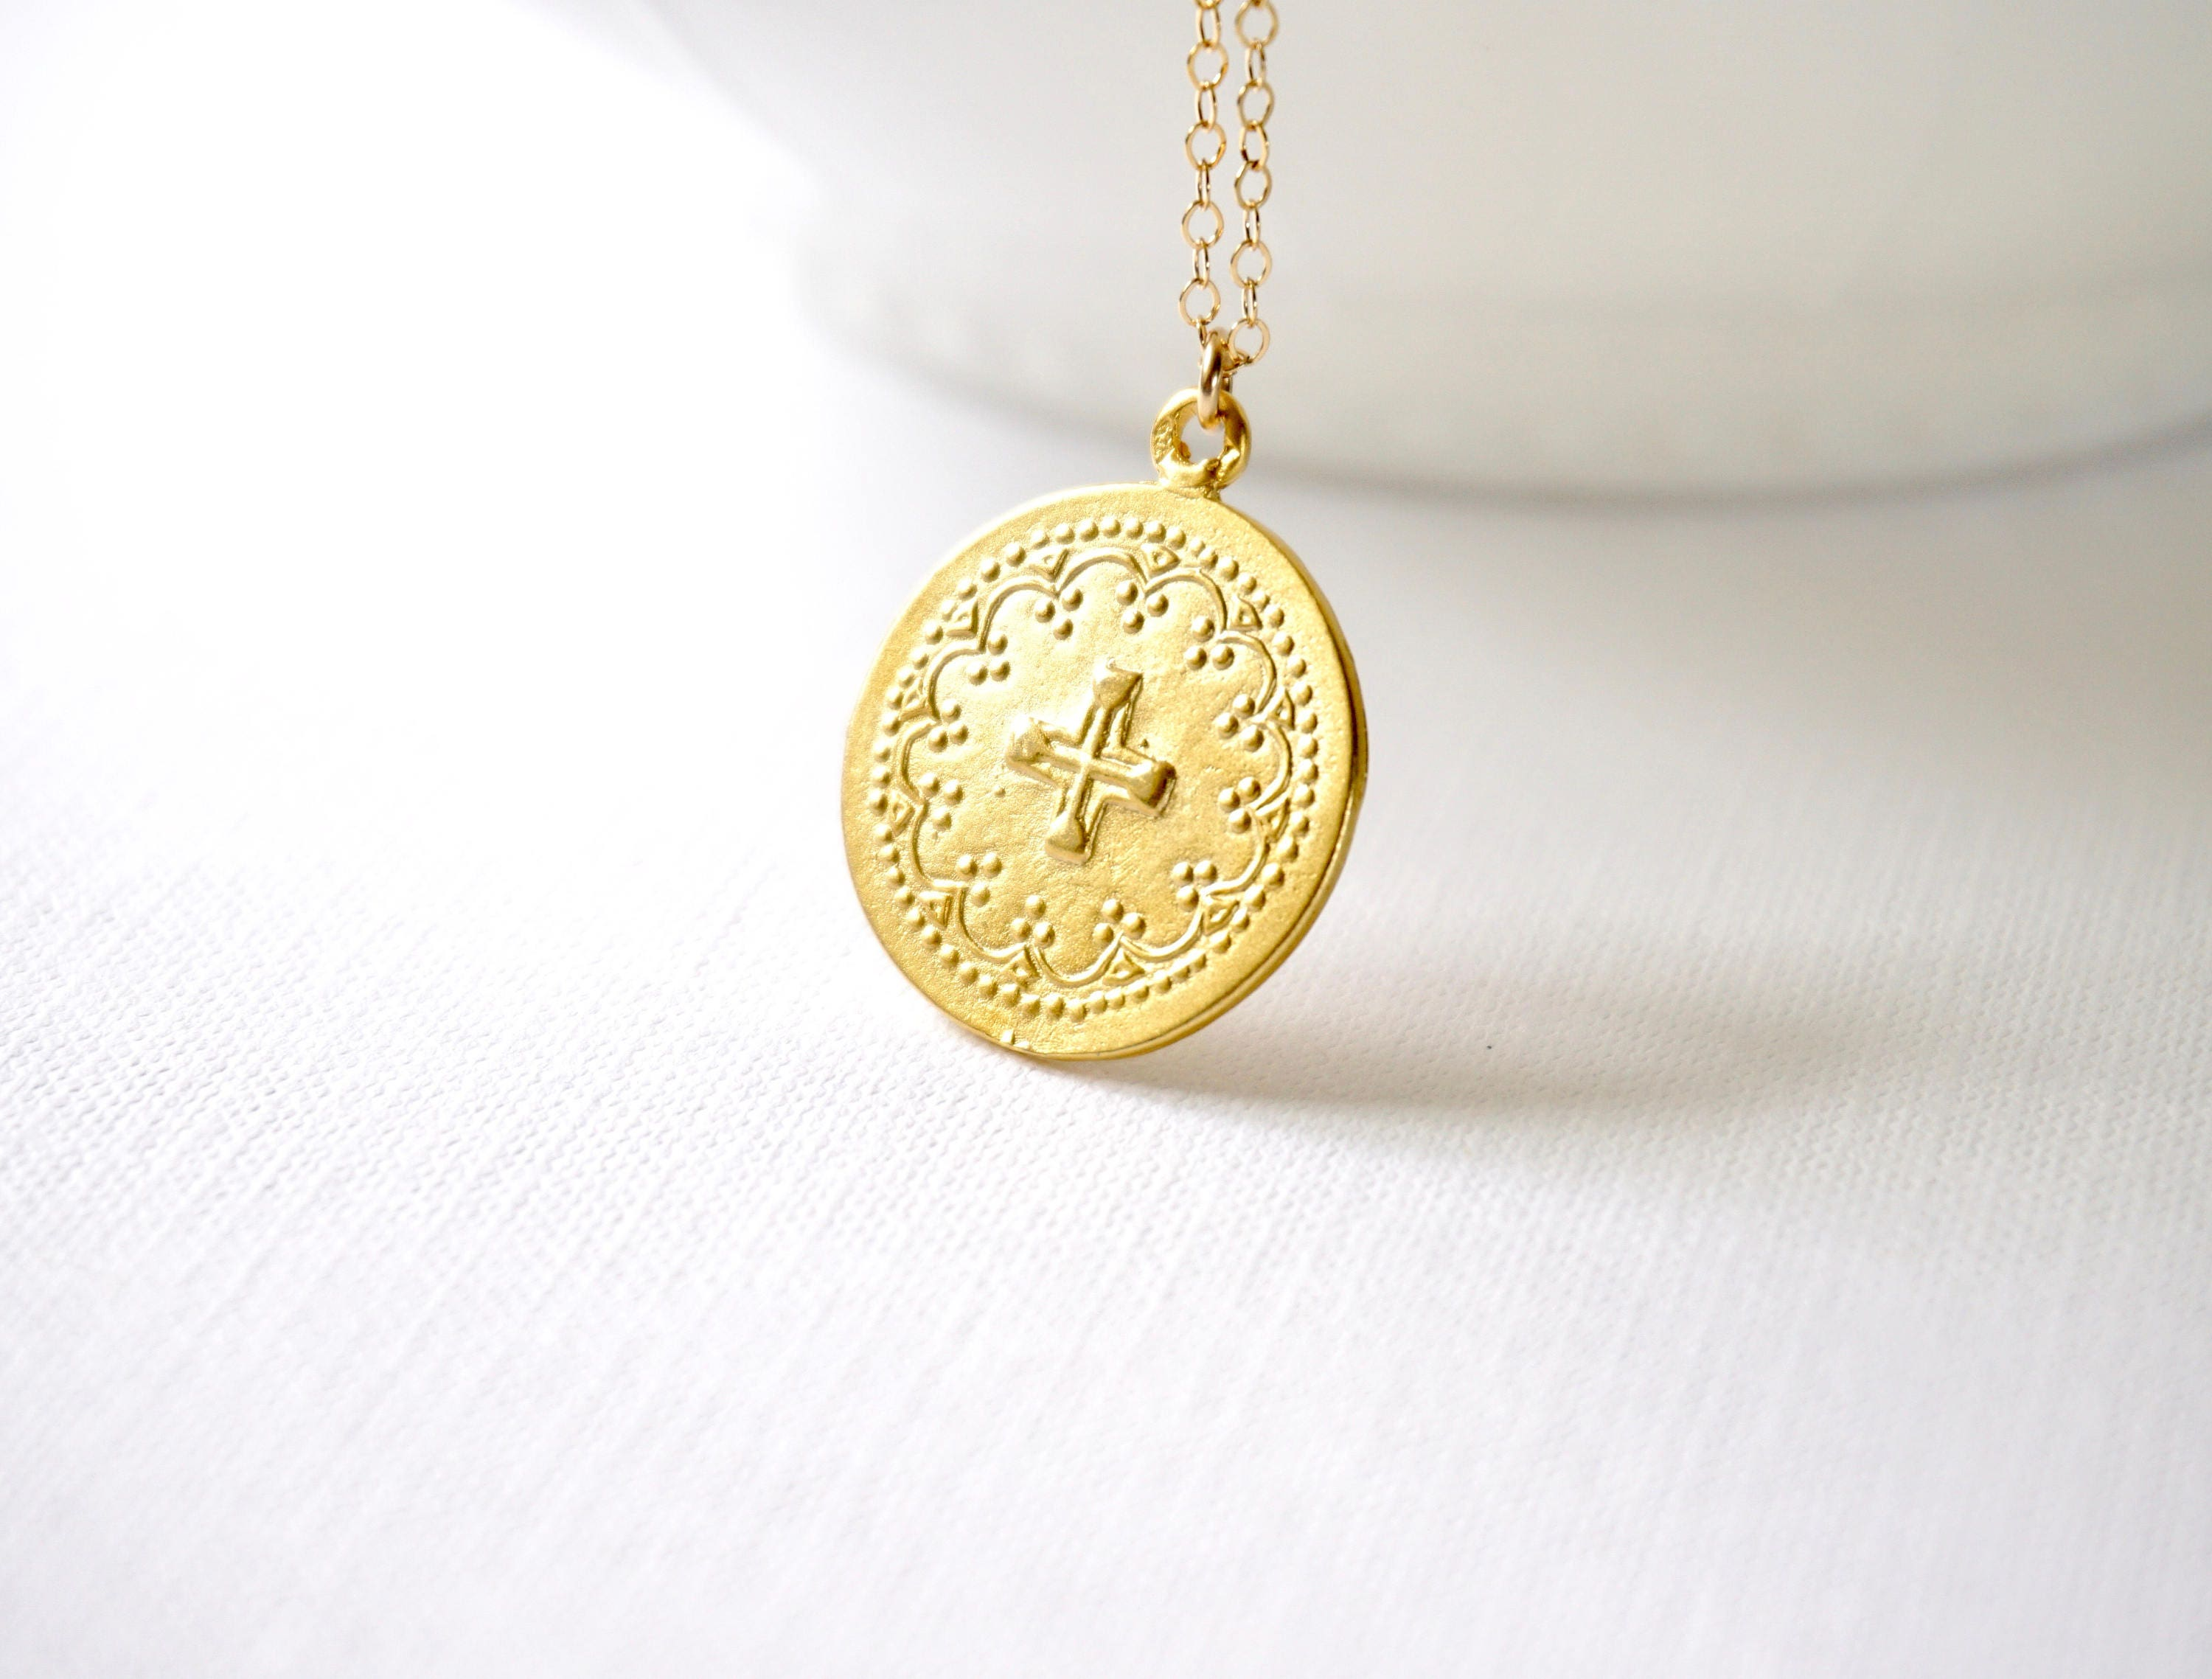 plated worthopedia uncirculated gold medallion hsbc